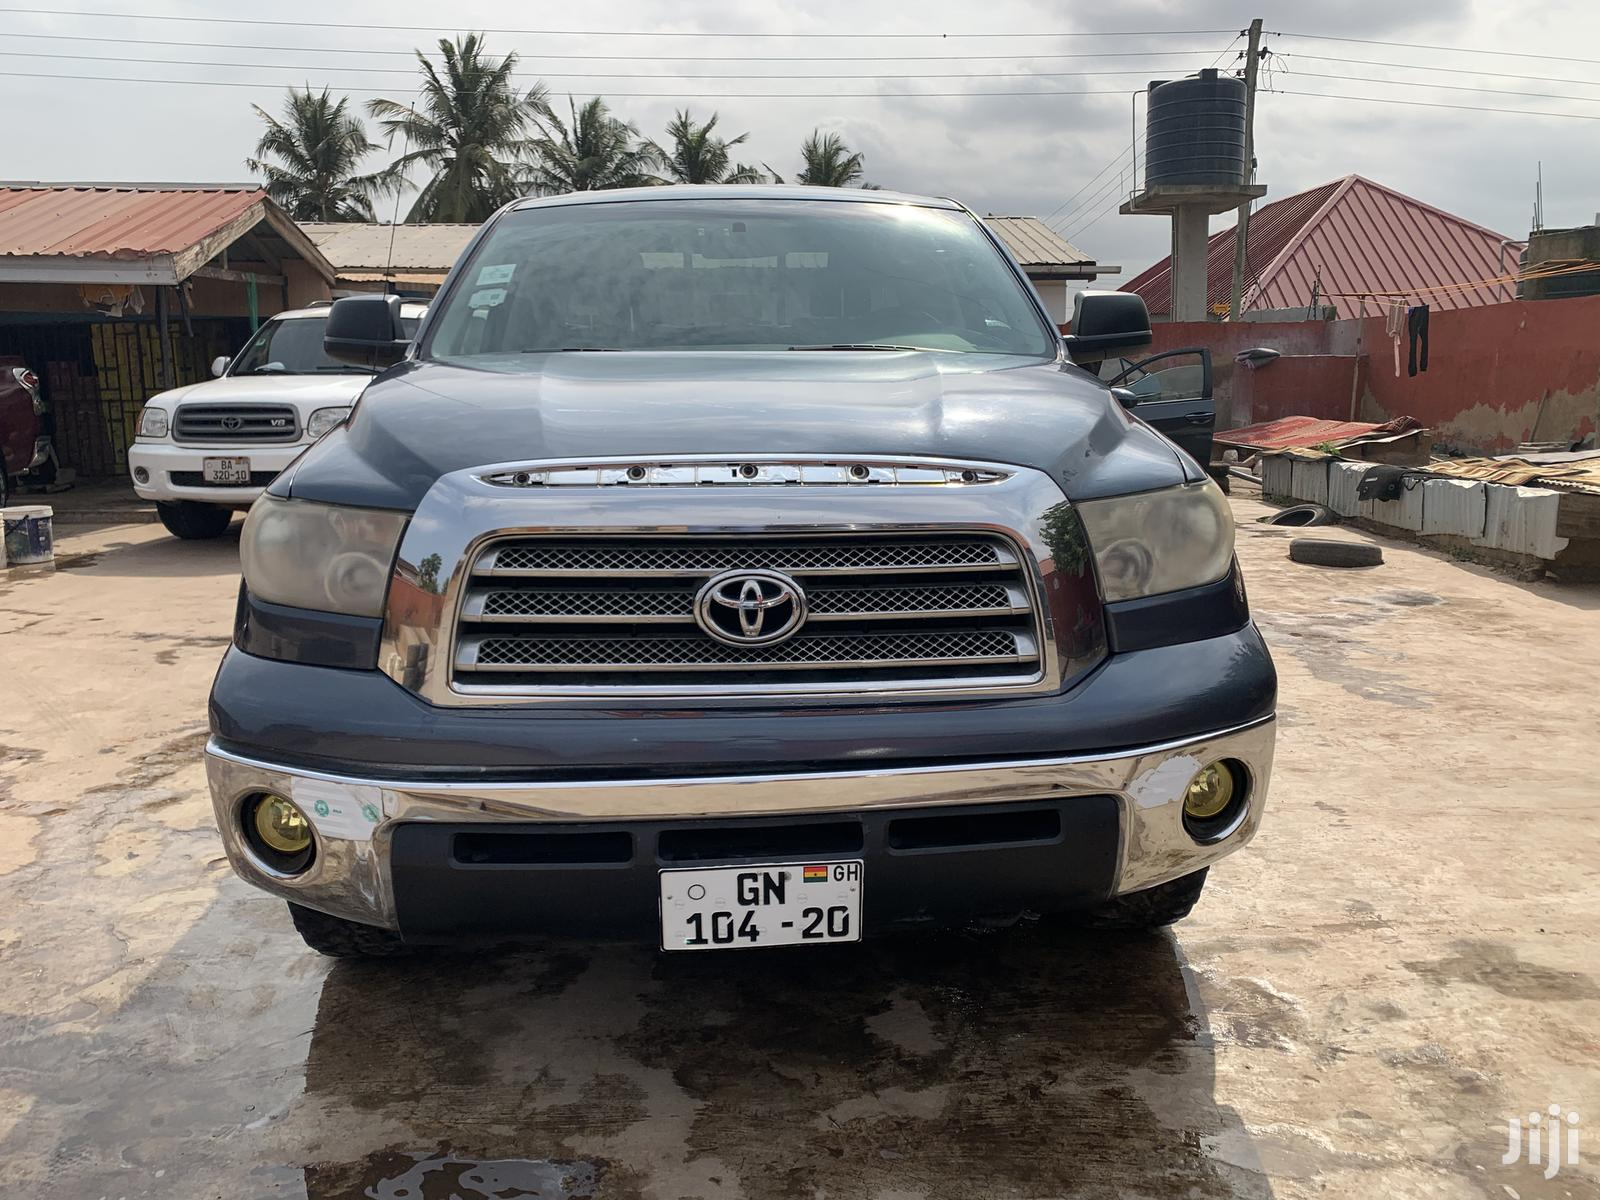 Archive: Toyota Tundra Double Cab 2008 Gray